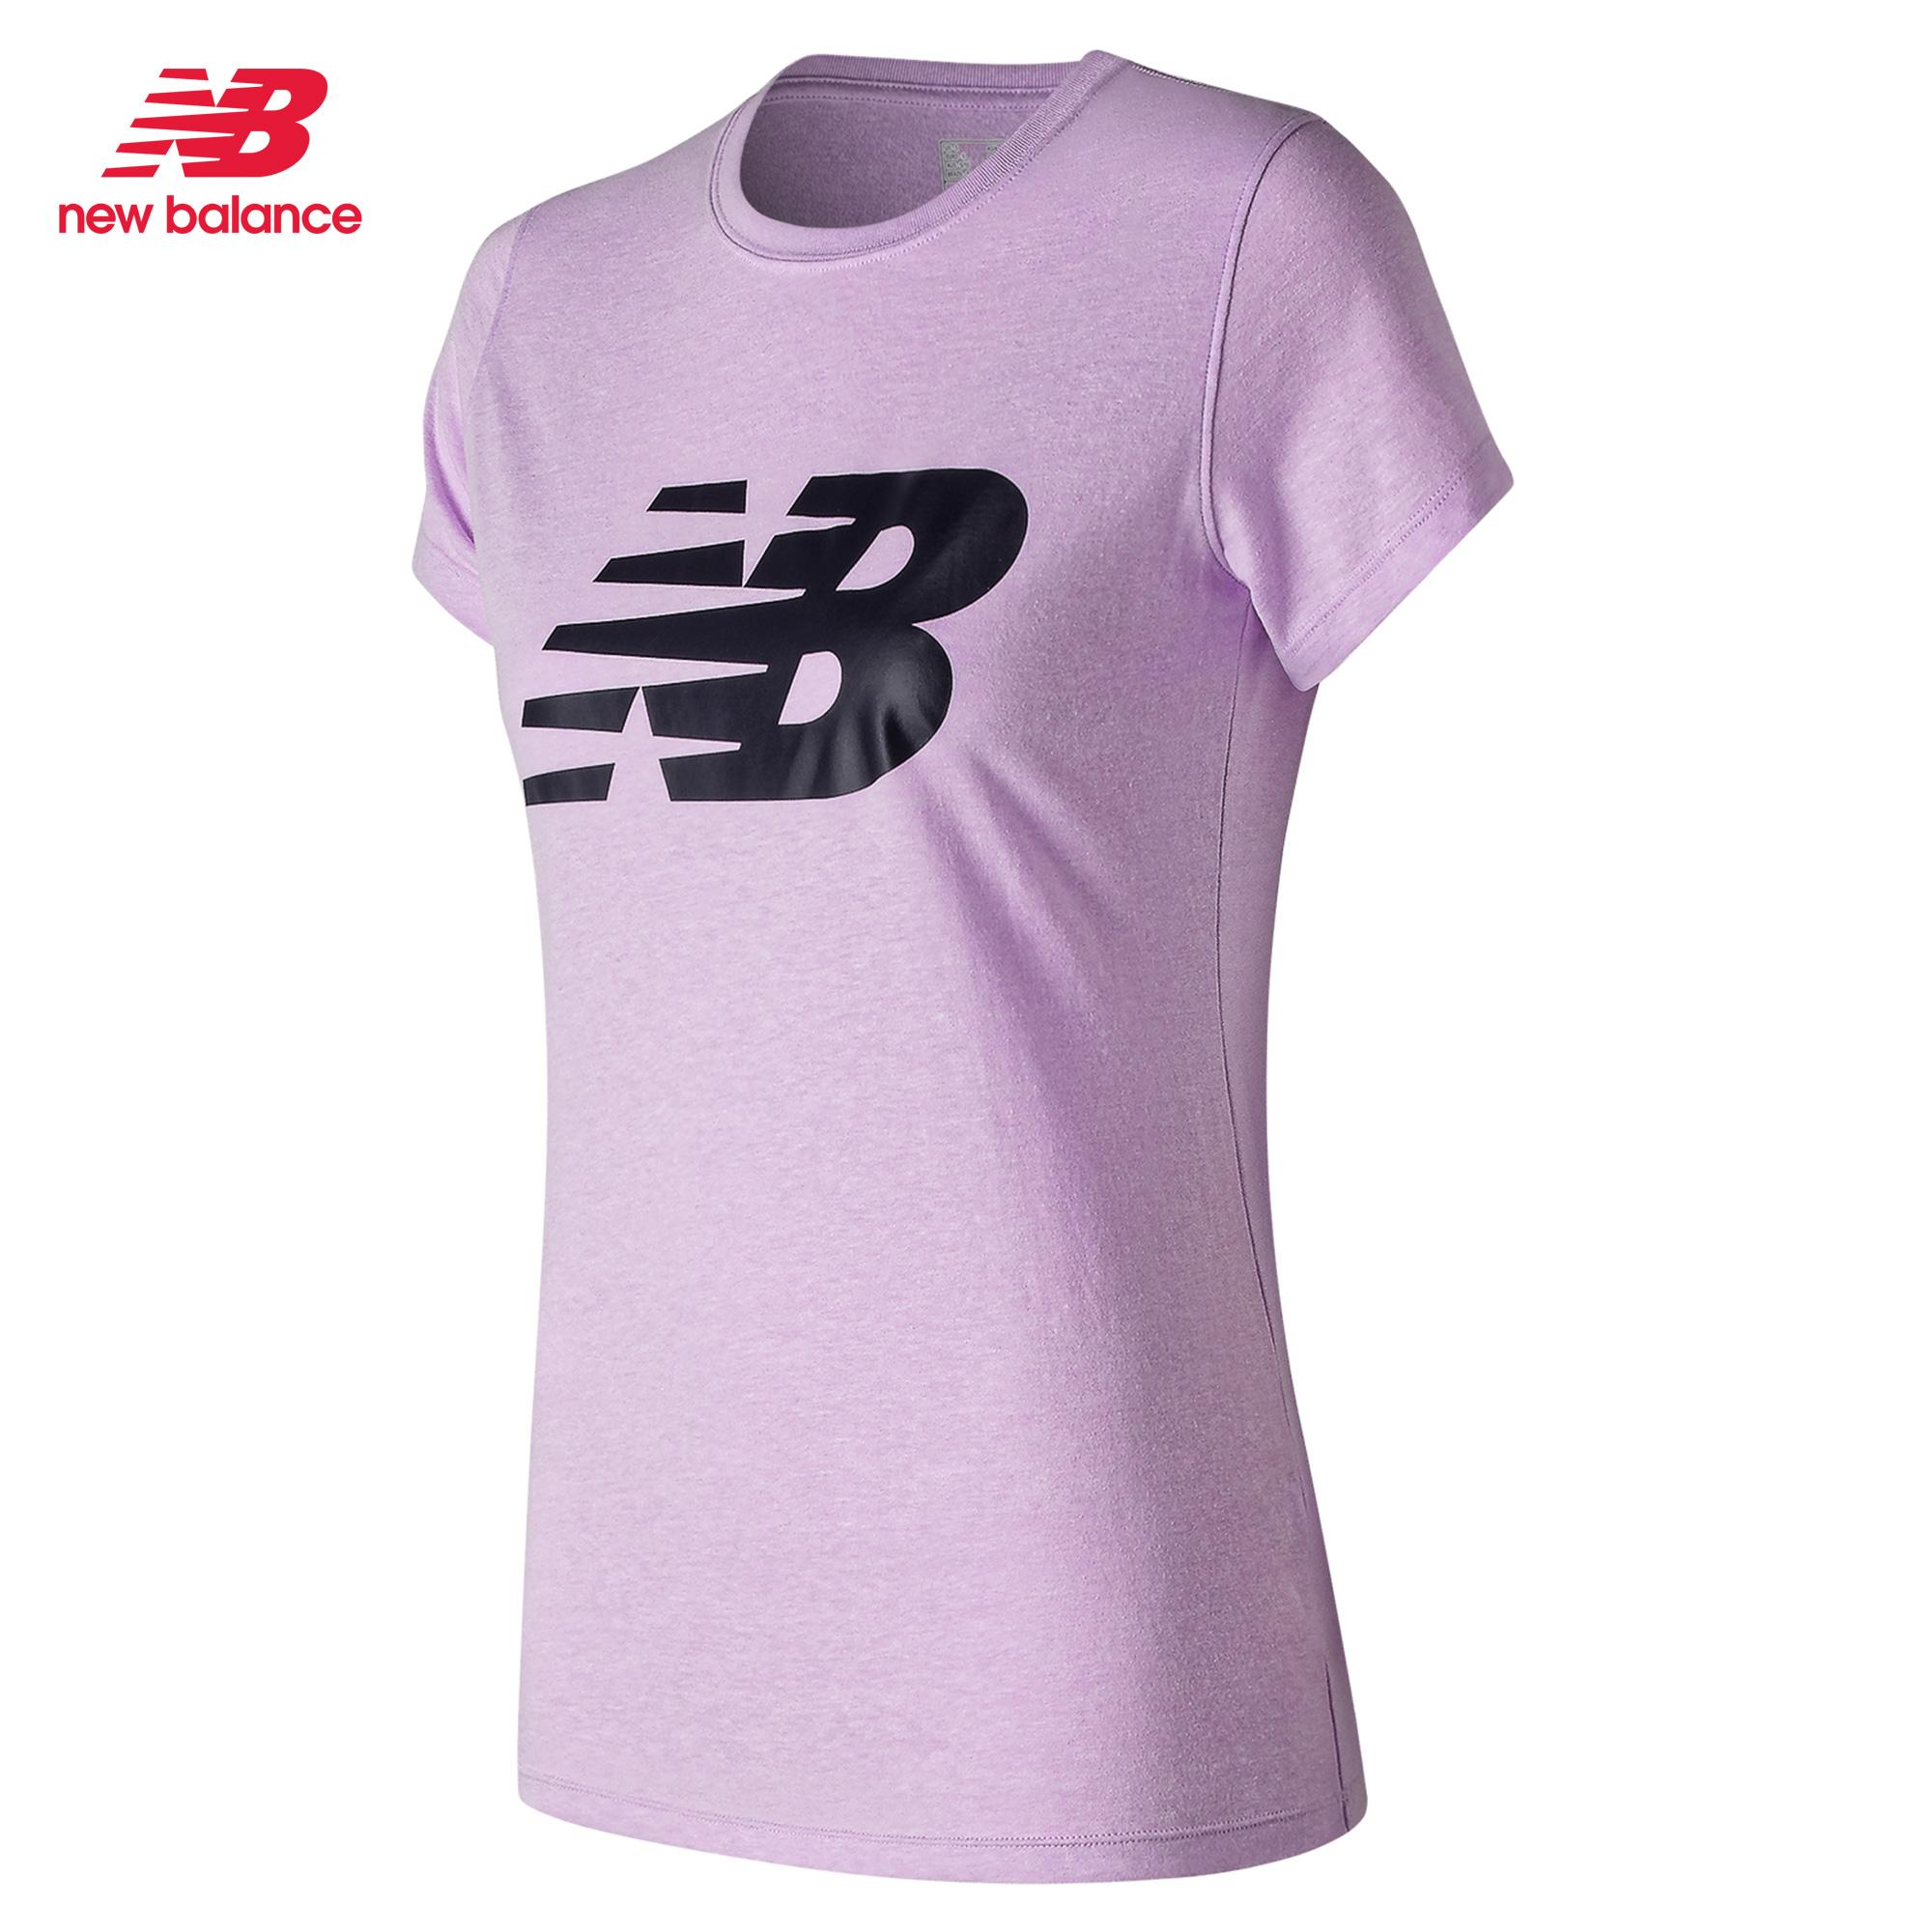 6f8f822da49a7 Womens T-Shirts for sale - T-Shirts for Women Online Deals & Prices ...